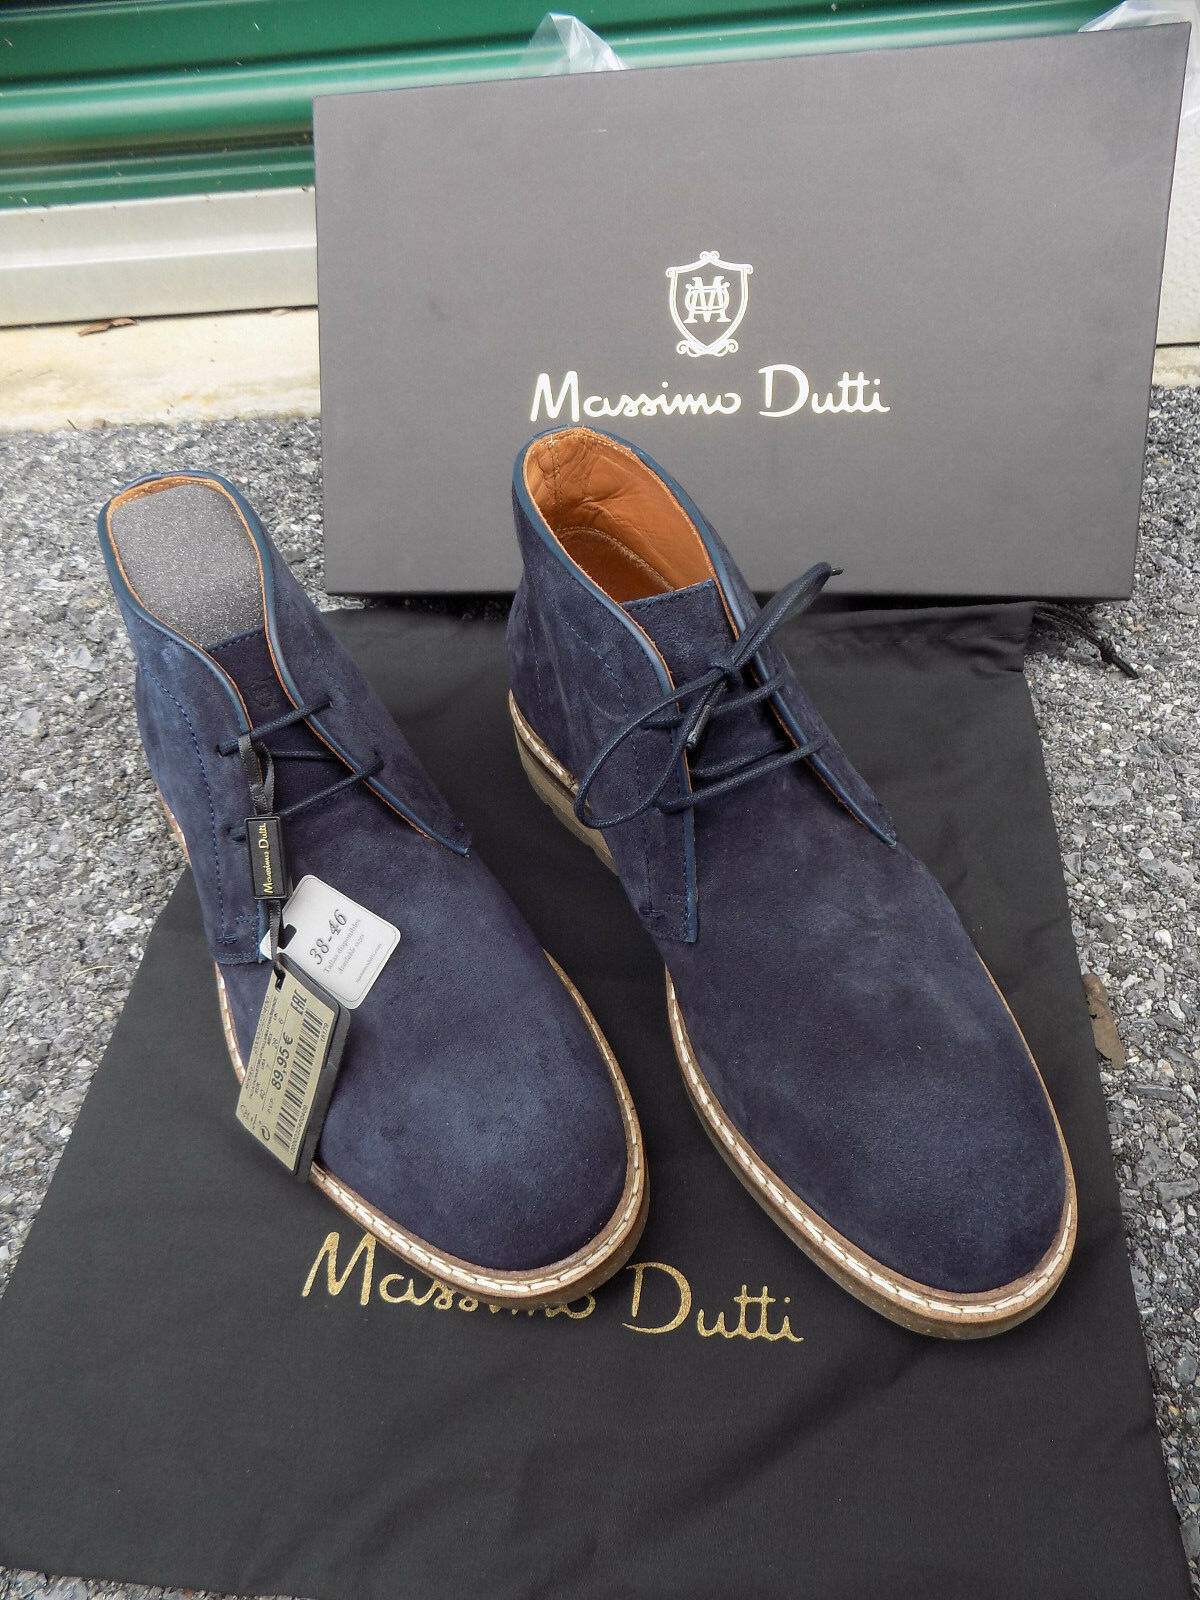 New w box Massimo Dutti Chukka tie Mens Ankle Boots Blue Suede Mens tie Sz 40 7 Womens 9 8561f5